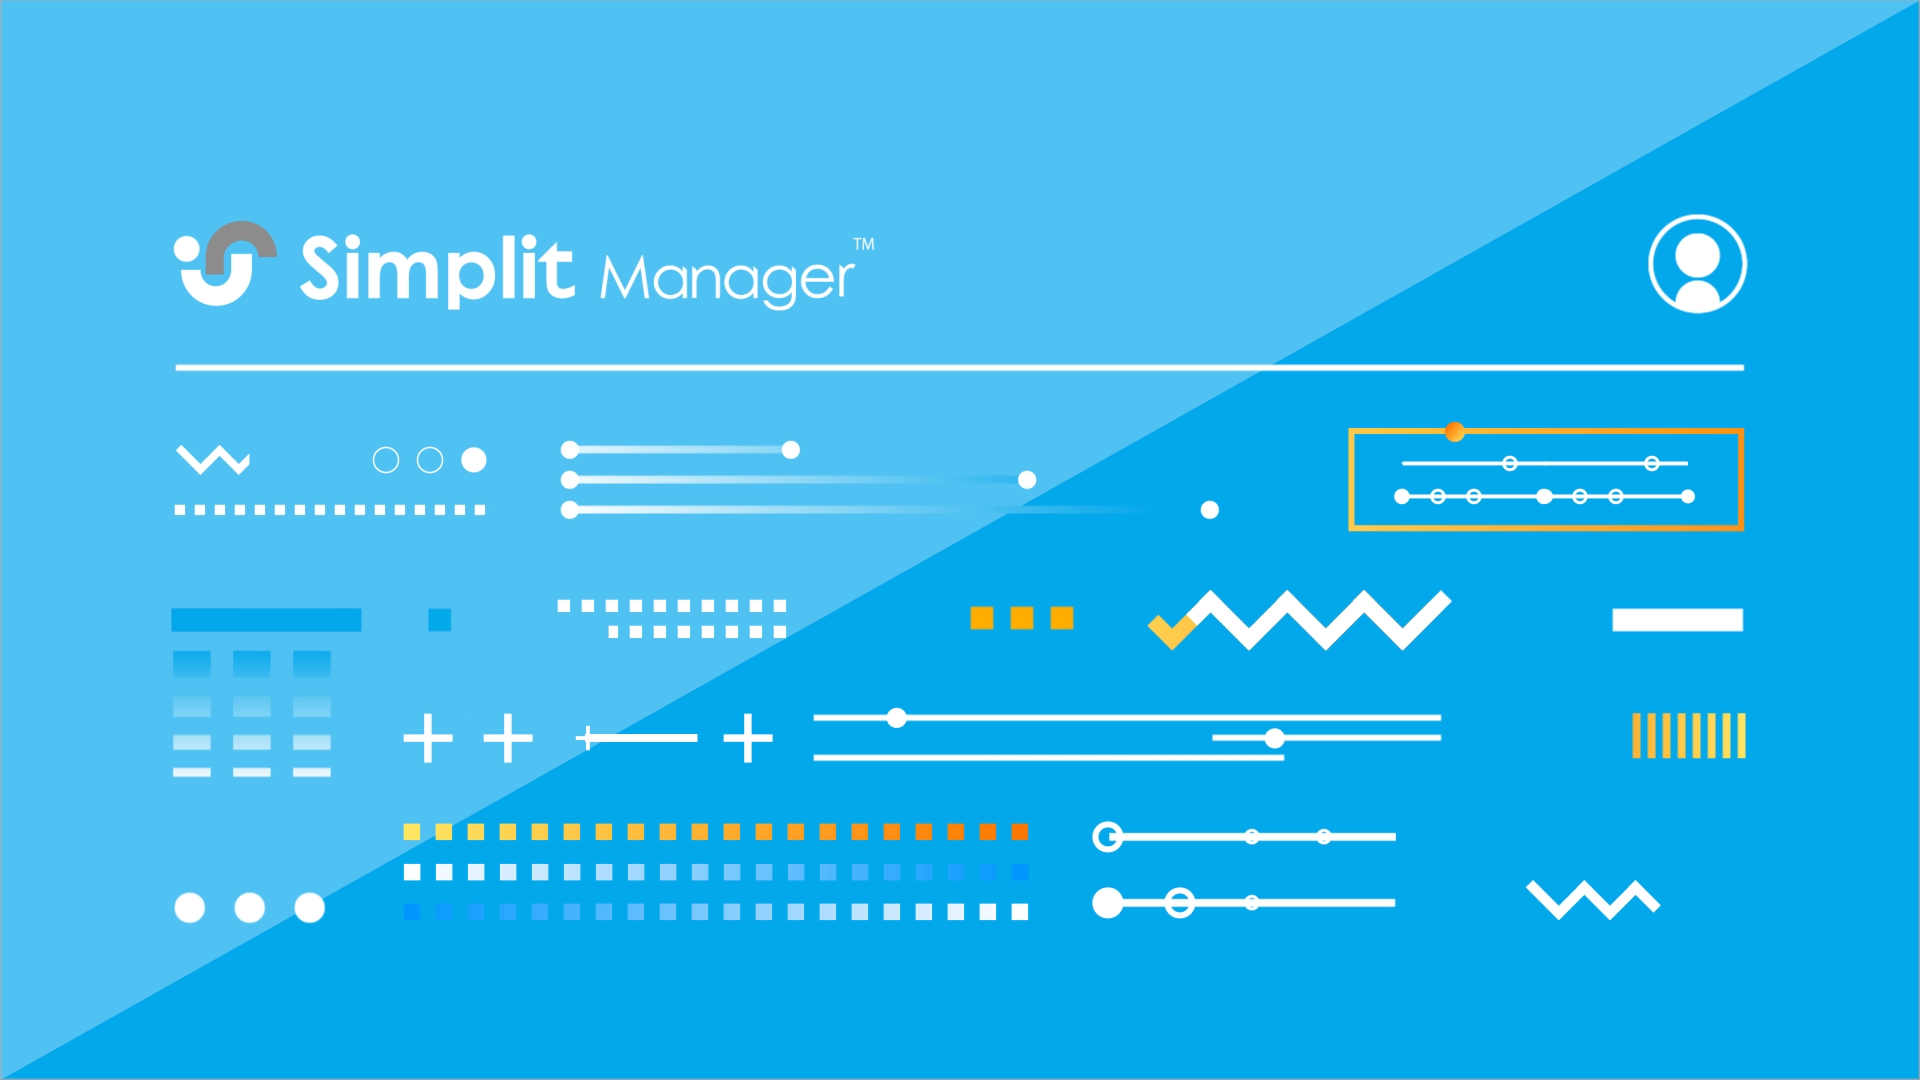 Simplit Manager